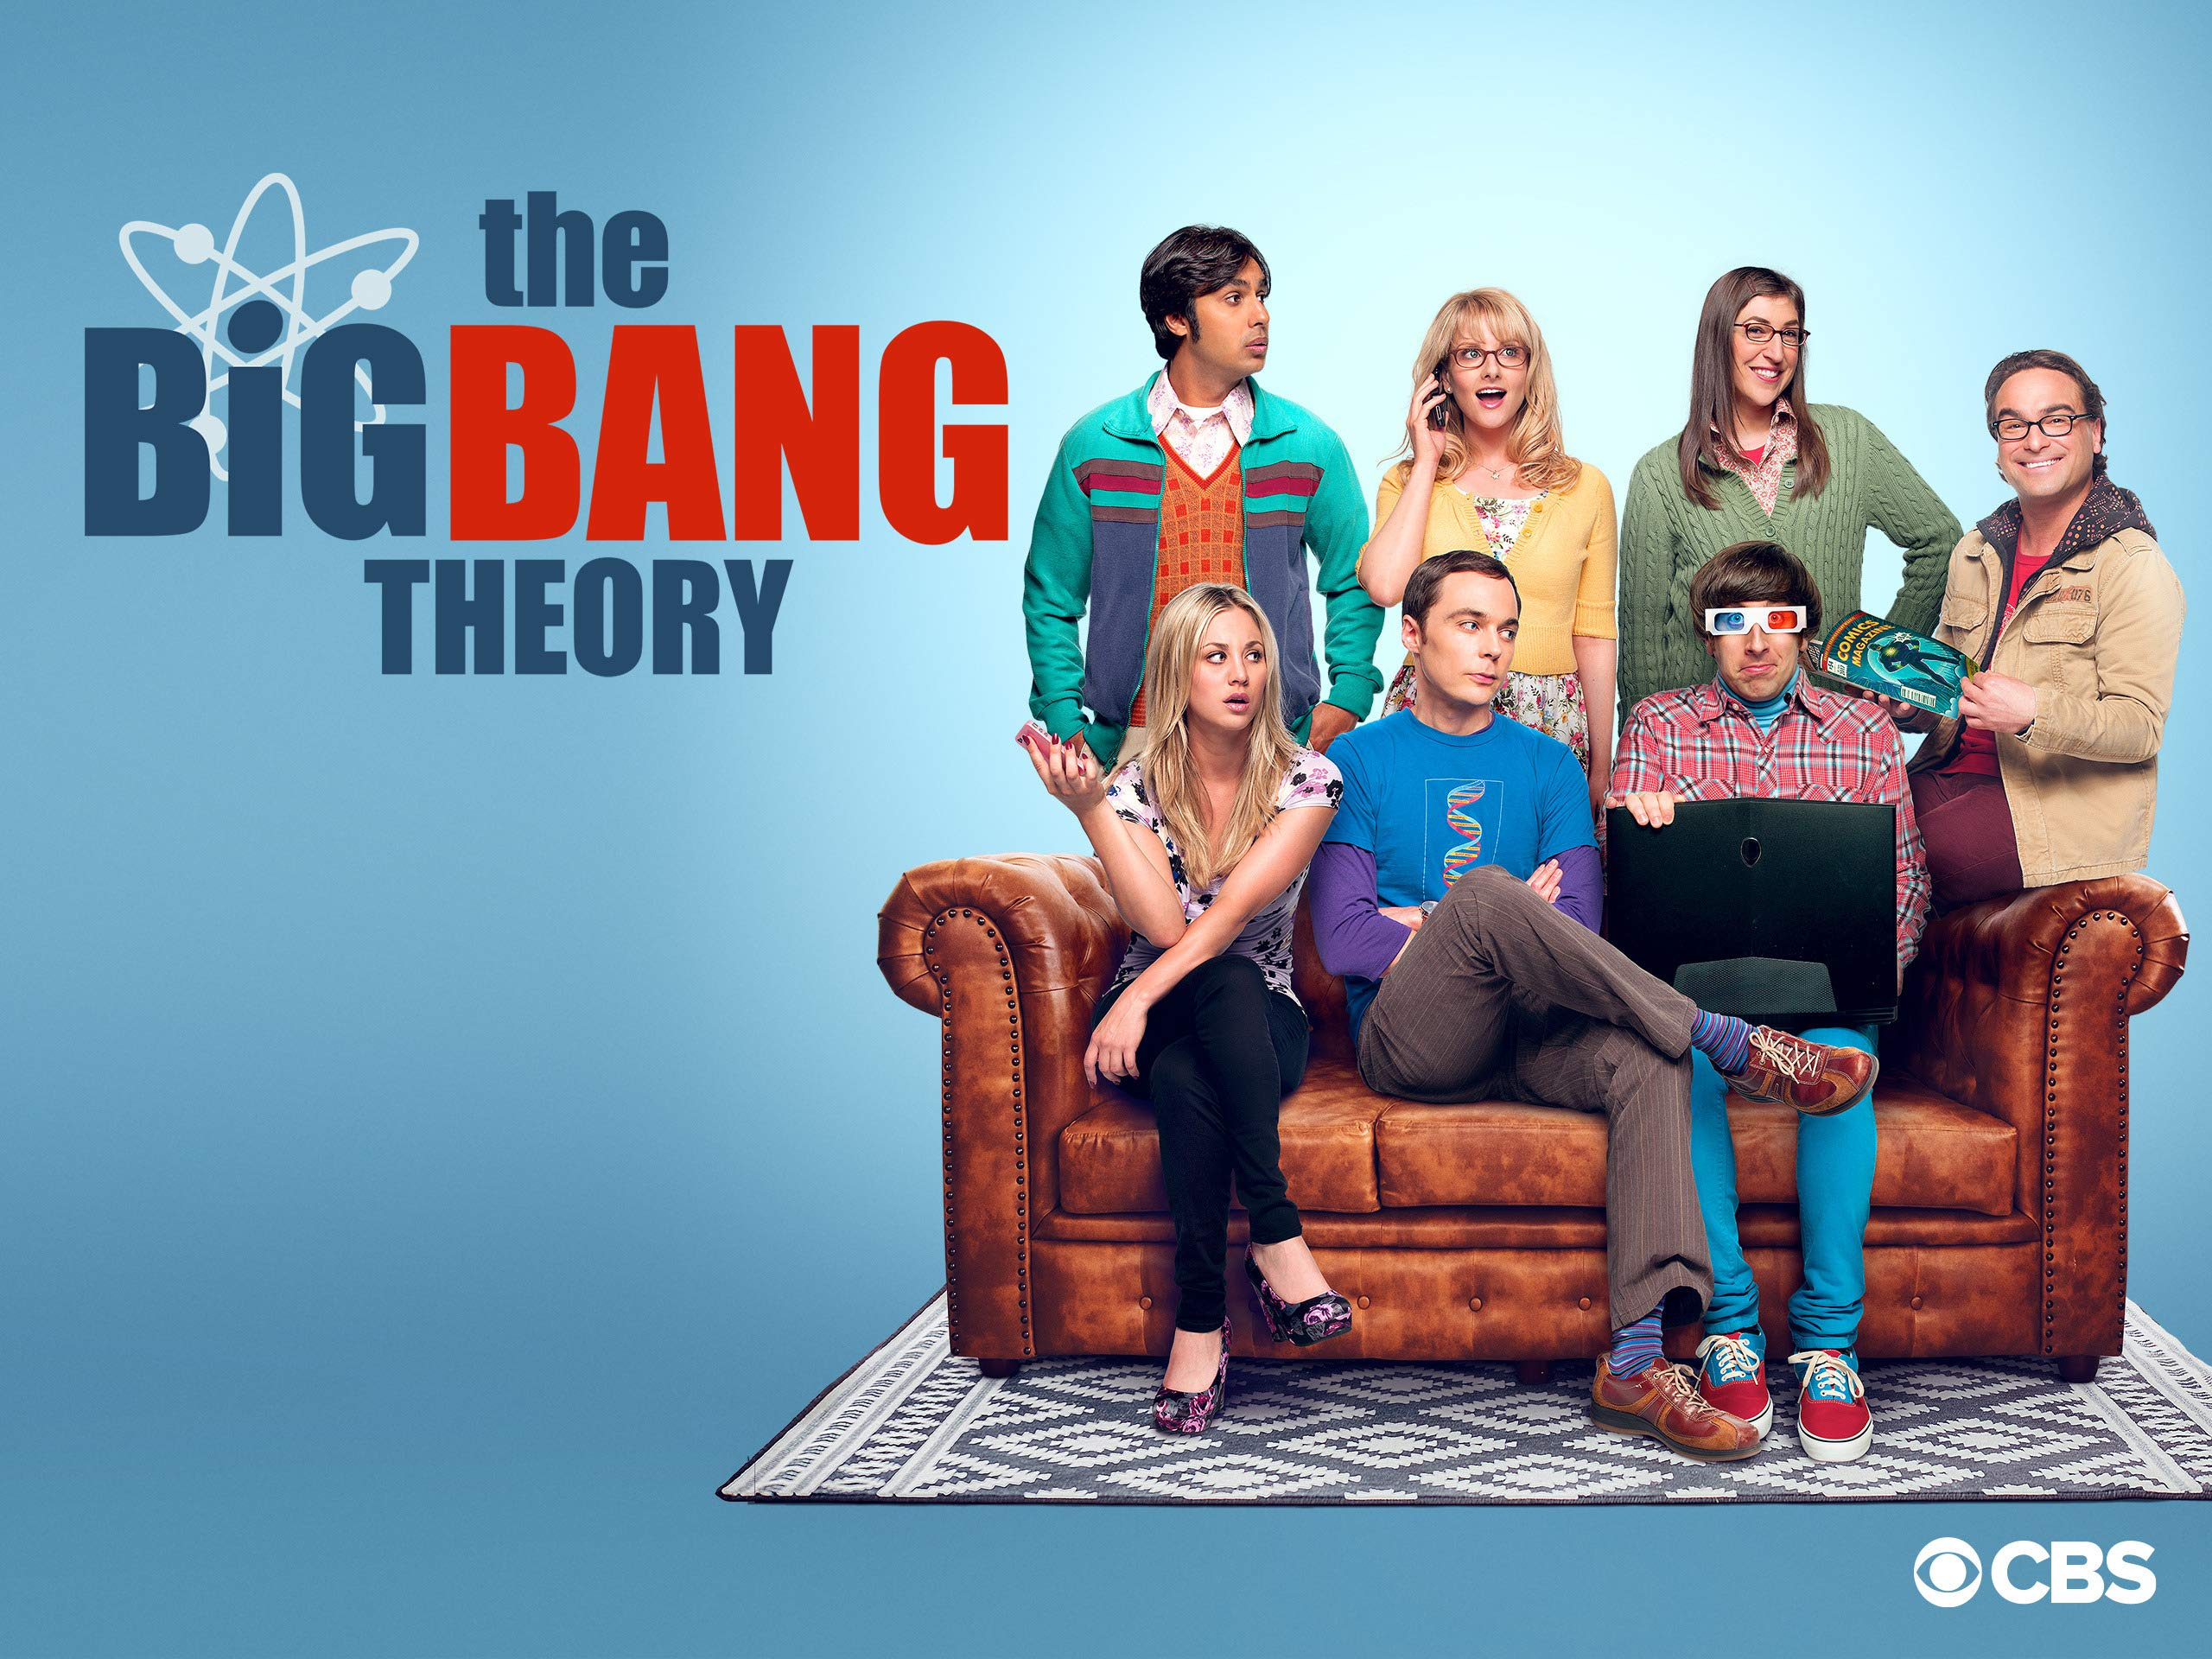 big bang theory season 2 episode 17 tubeplus